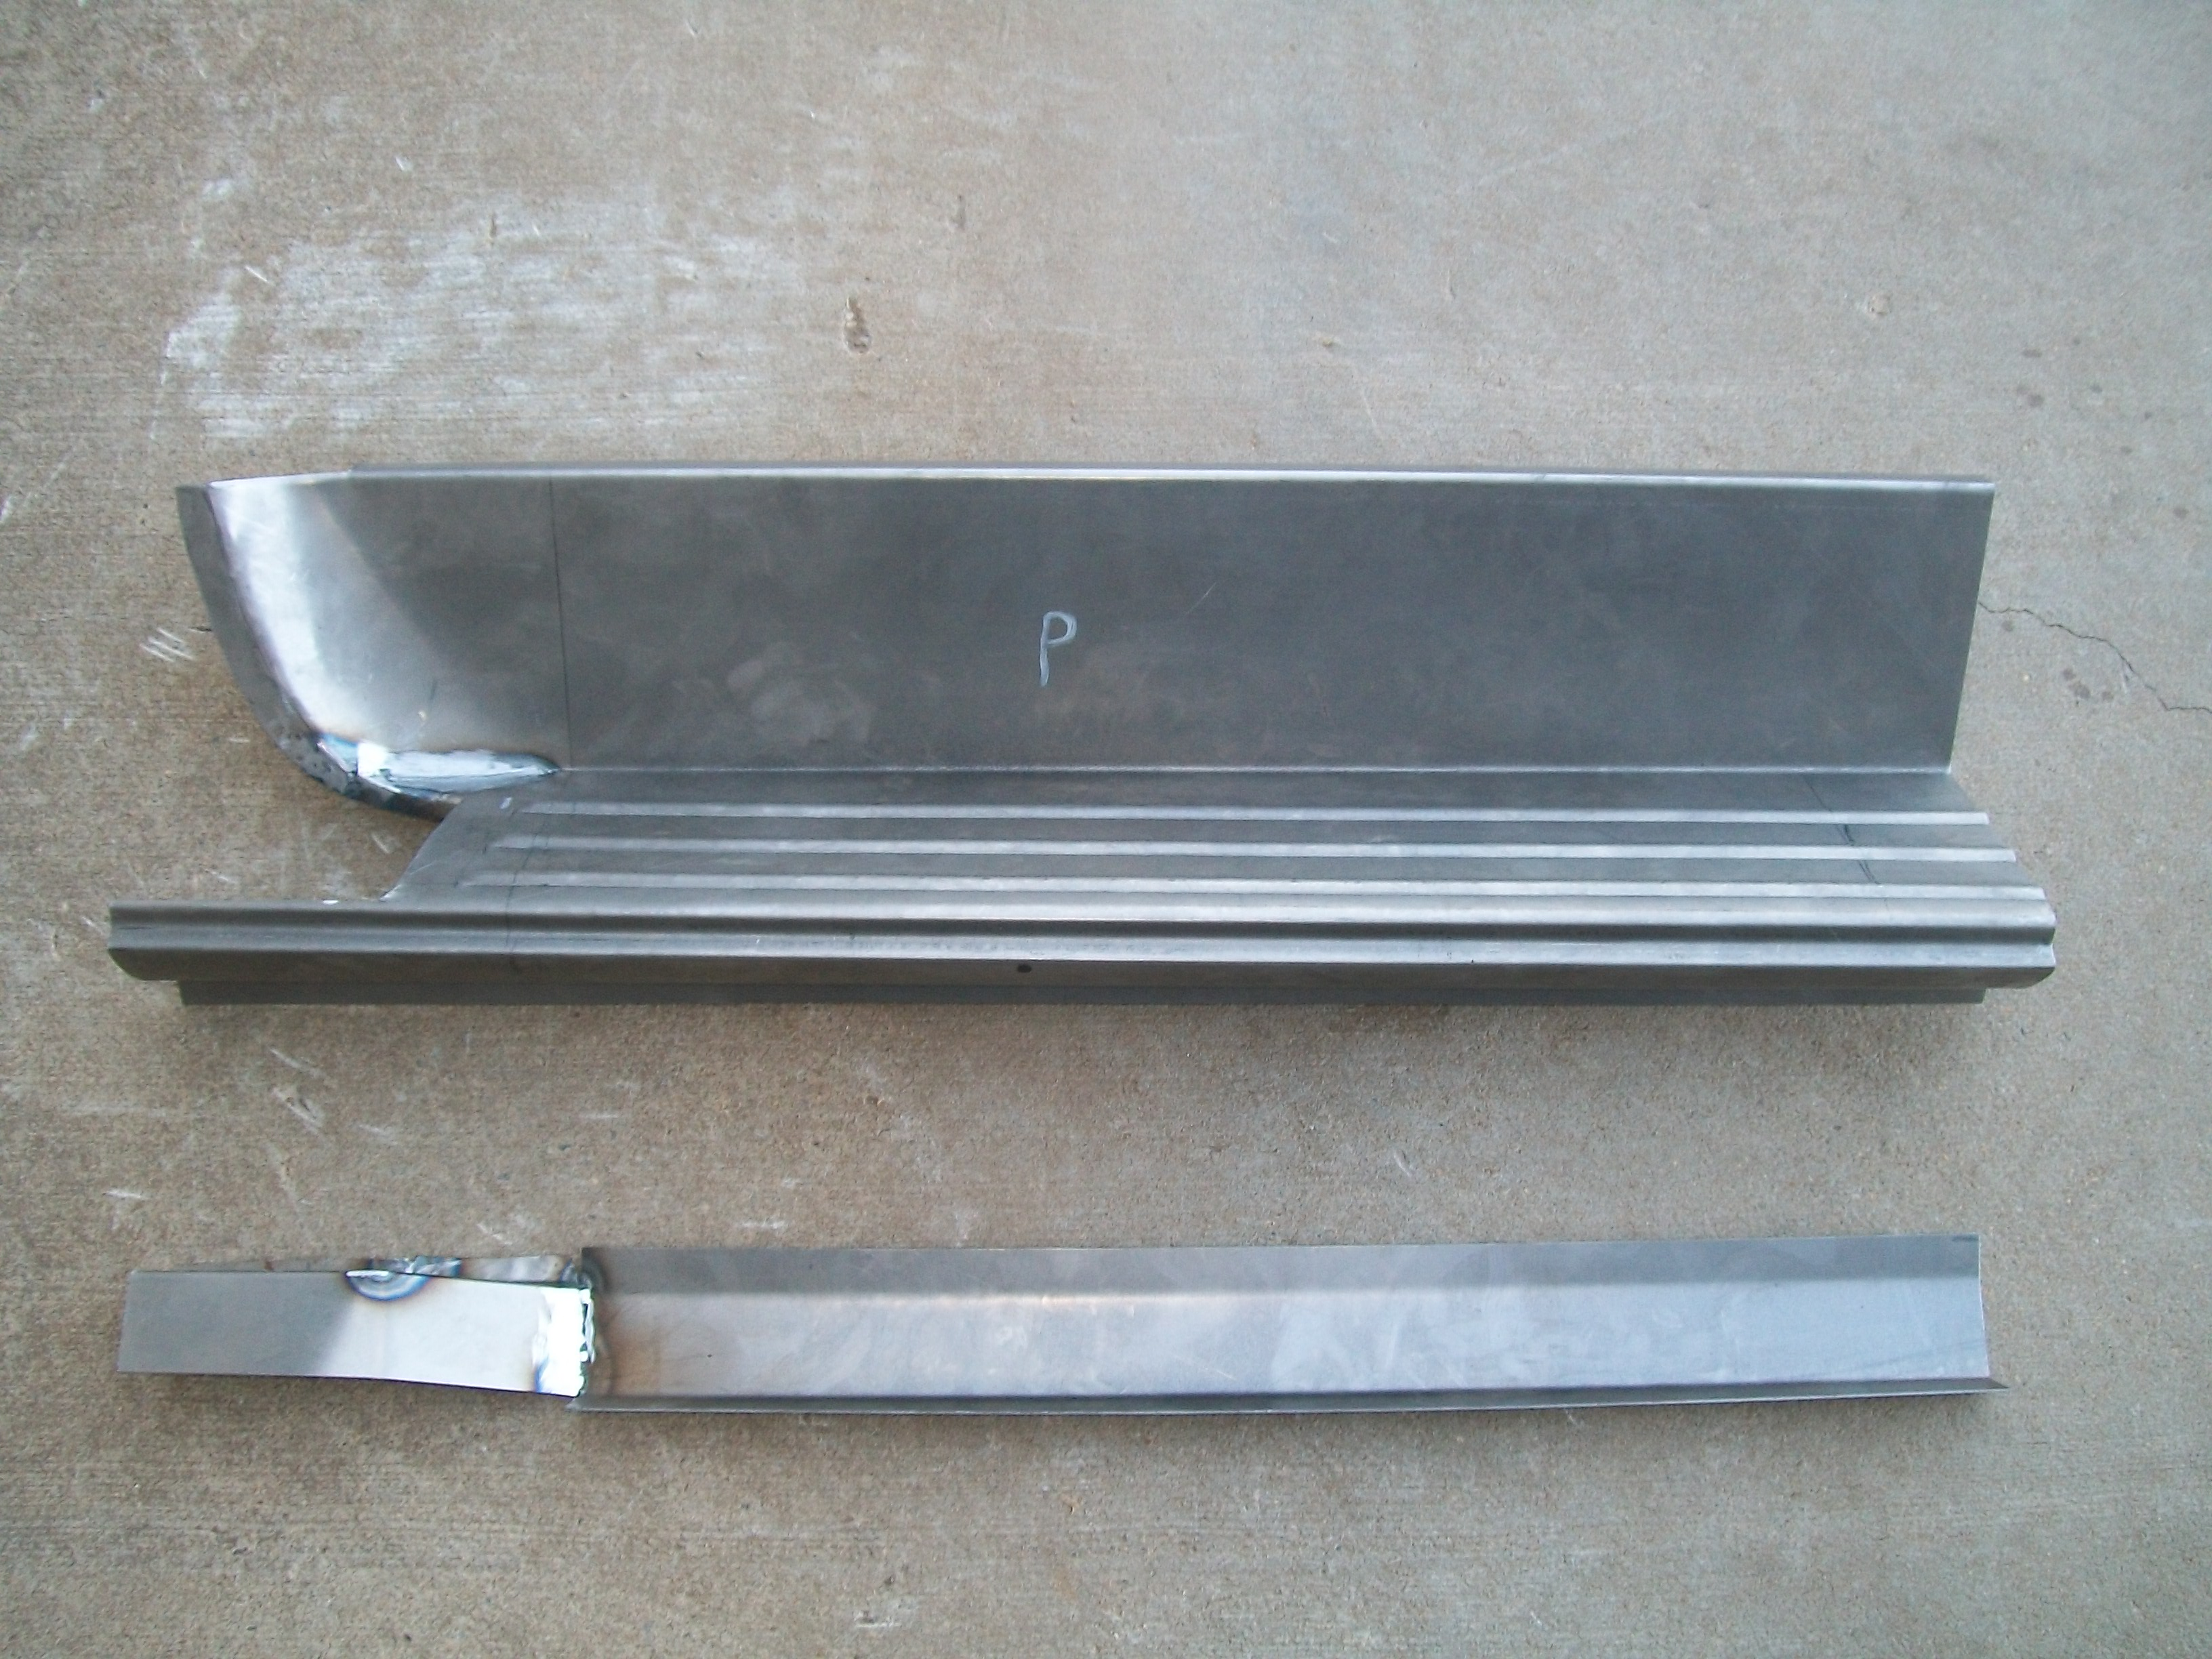 Dodge truck crew cab rocker panel assembly 61-71